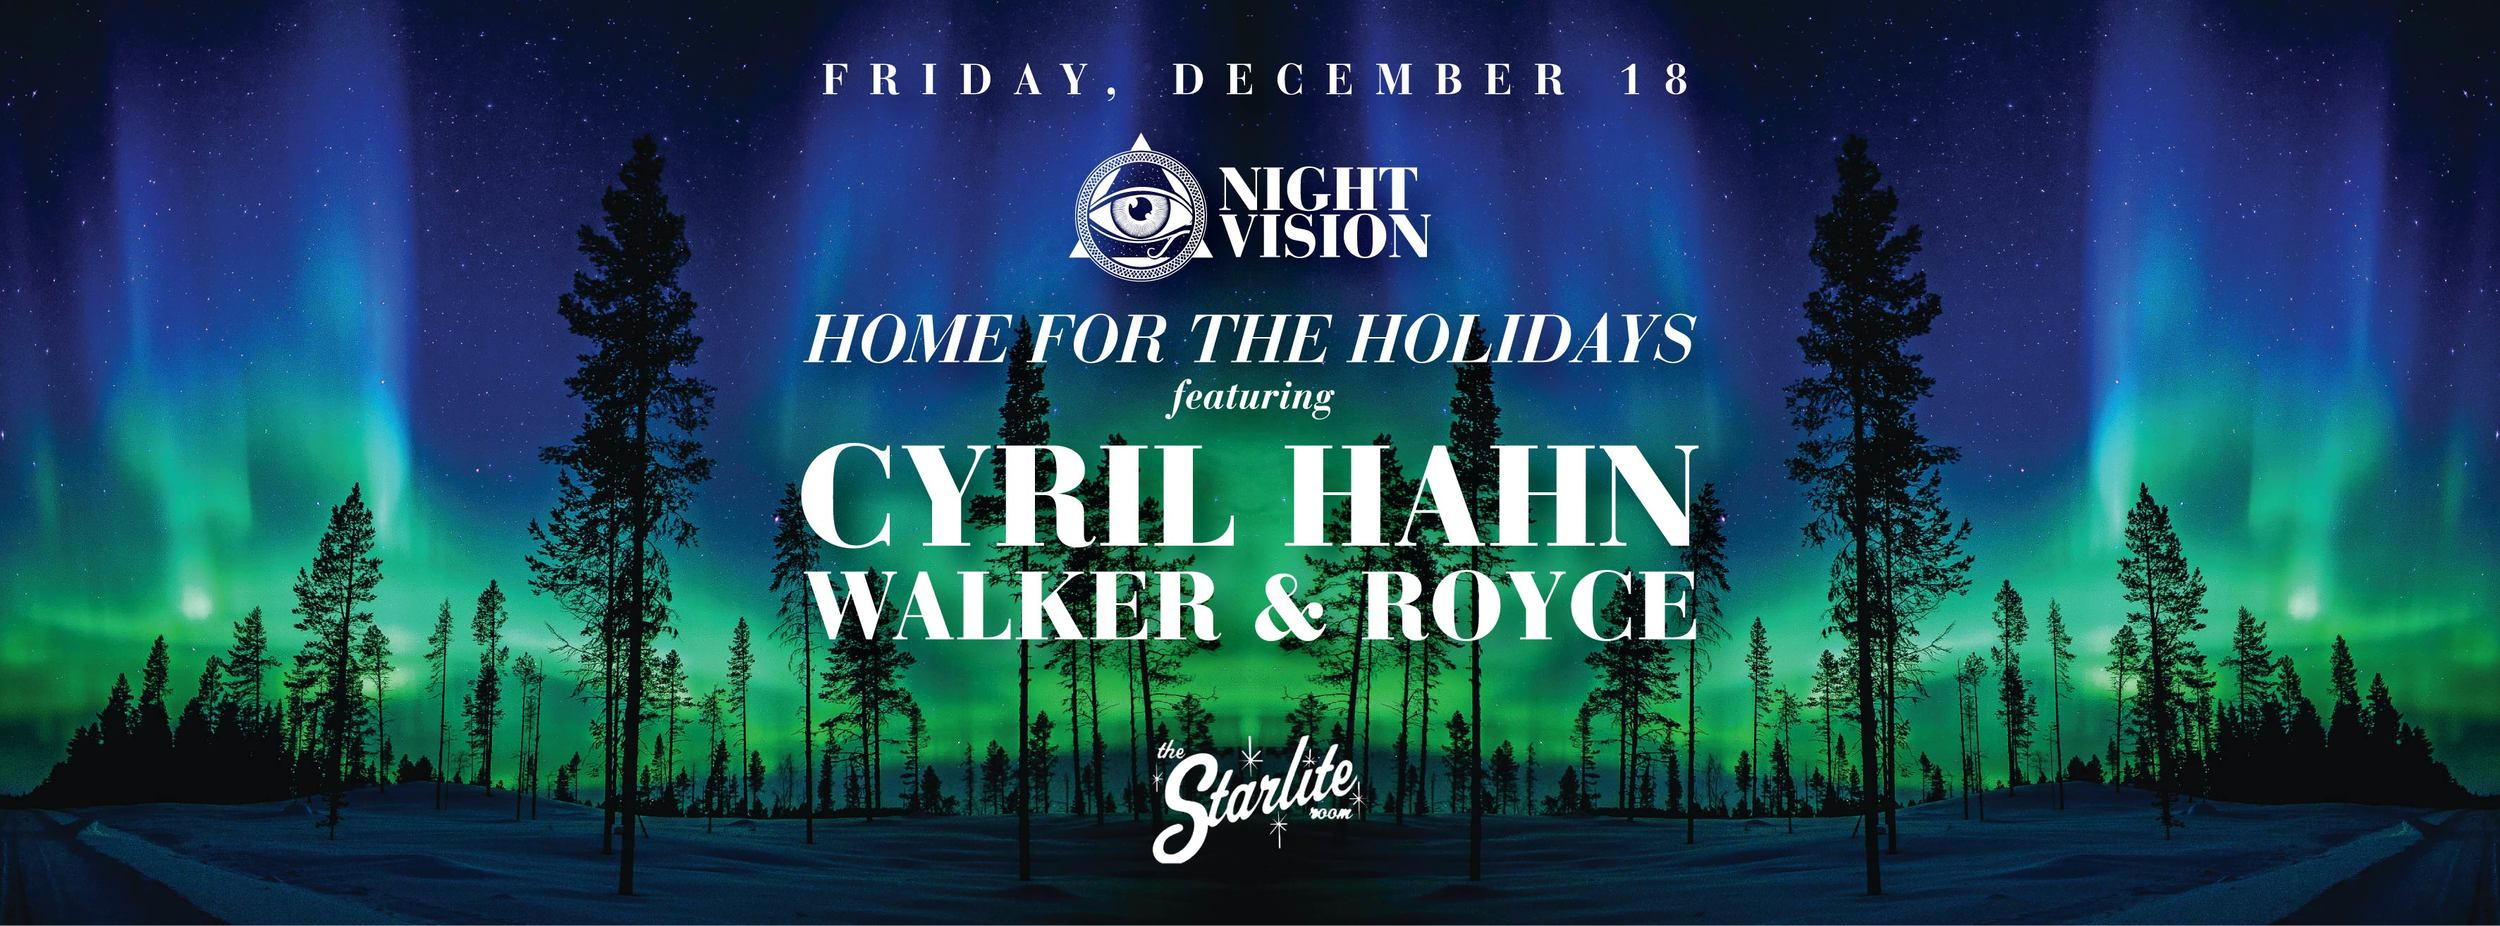 Cyril Hahn, Walker & Royce in Edmonton